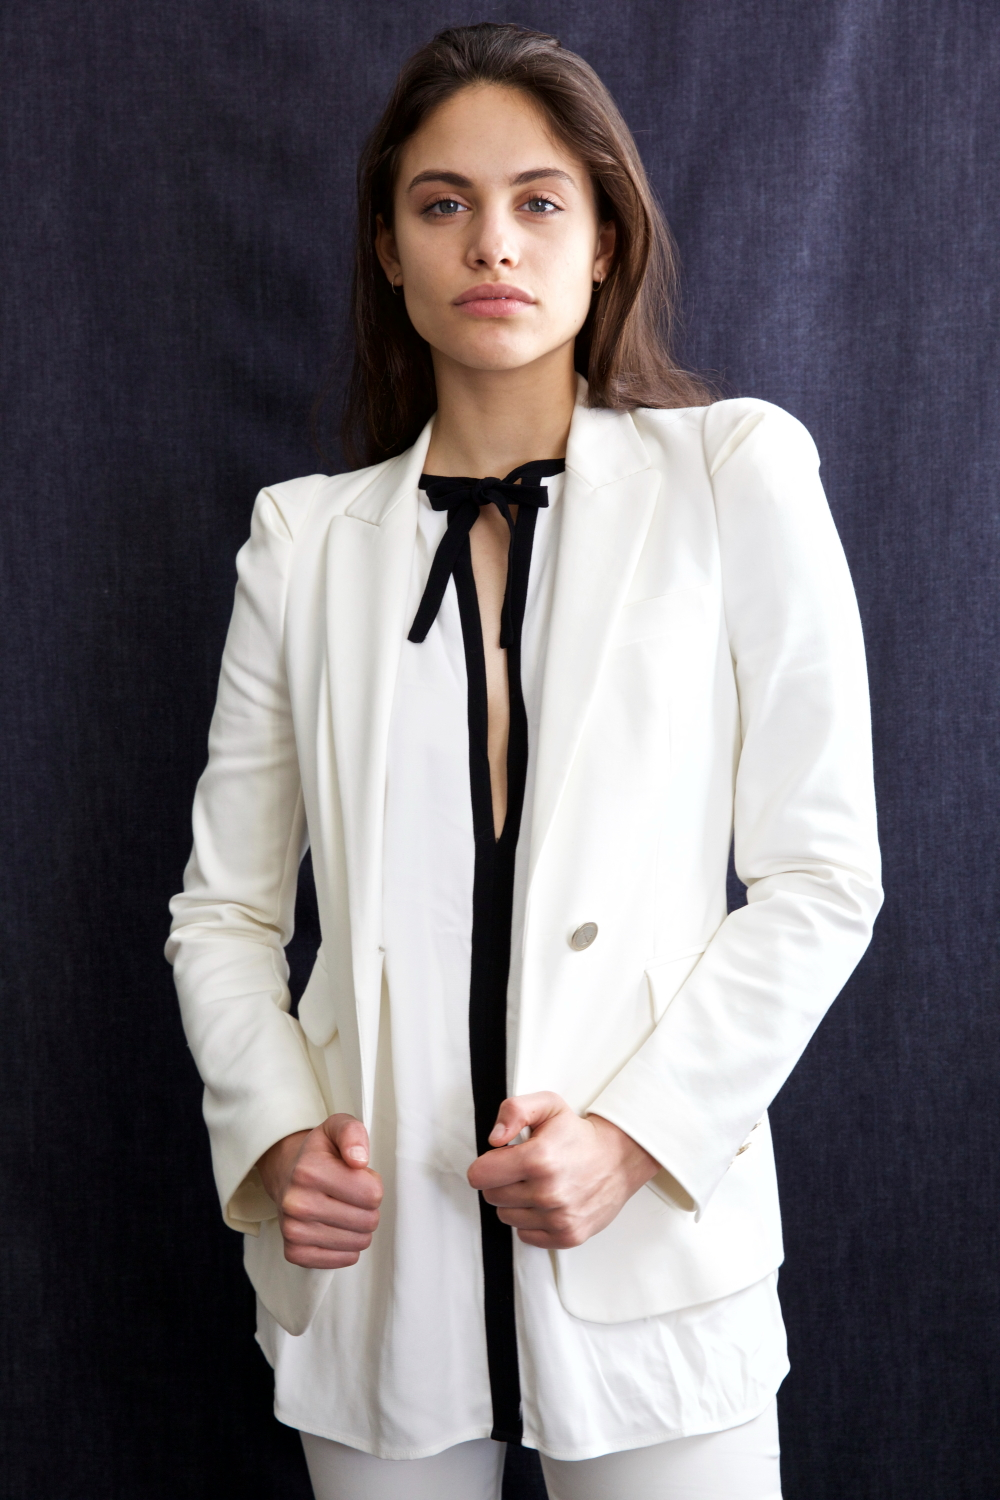 White suit - Zara, Black and white top - Zara,